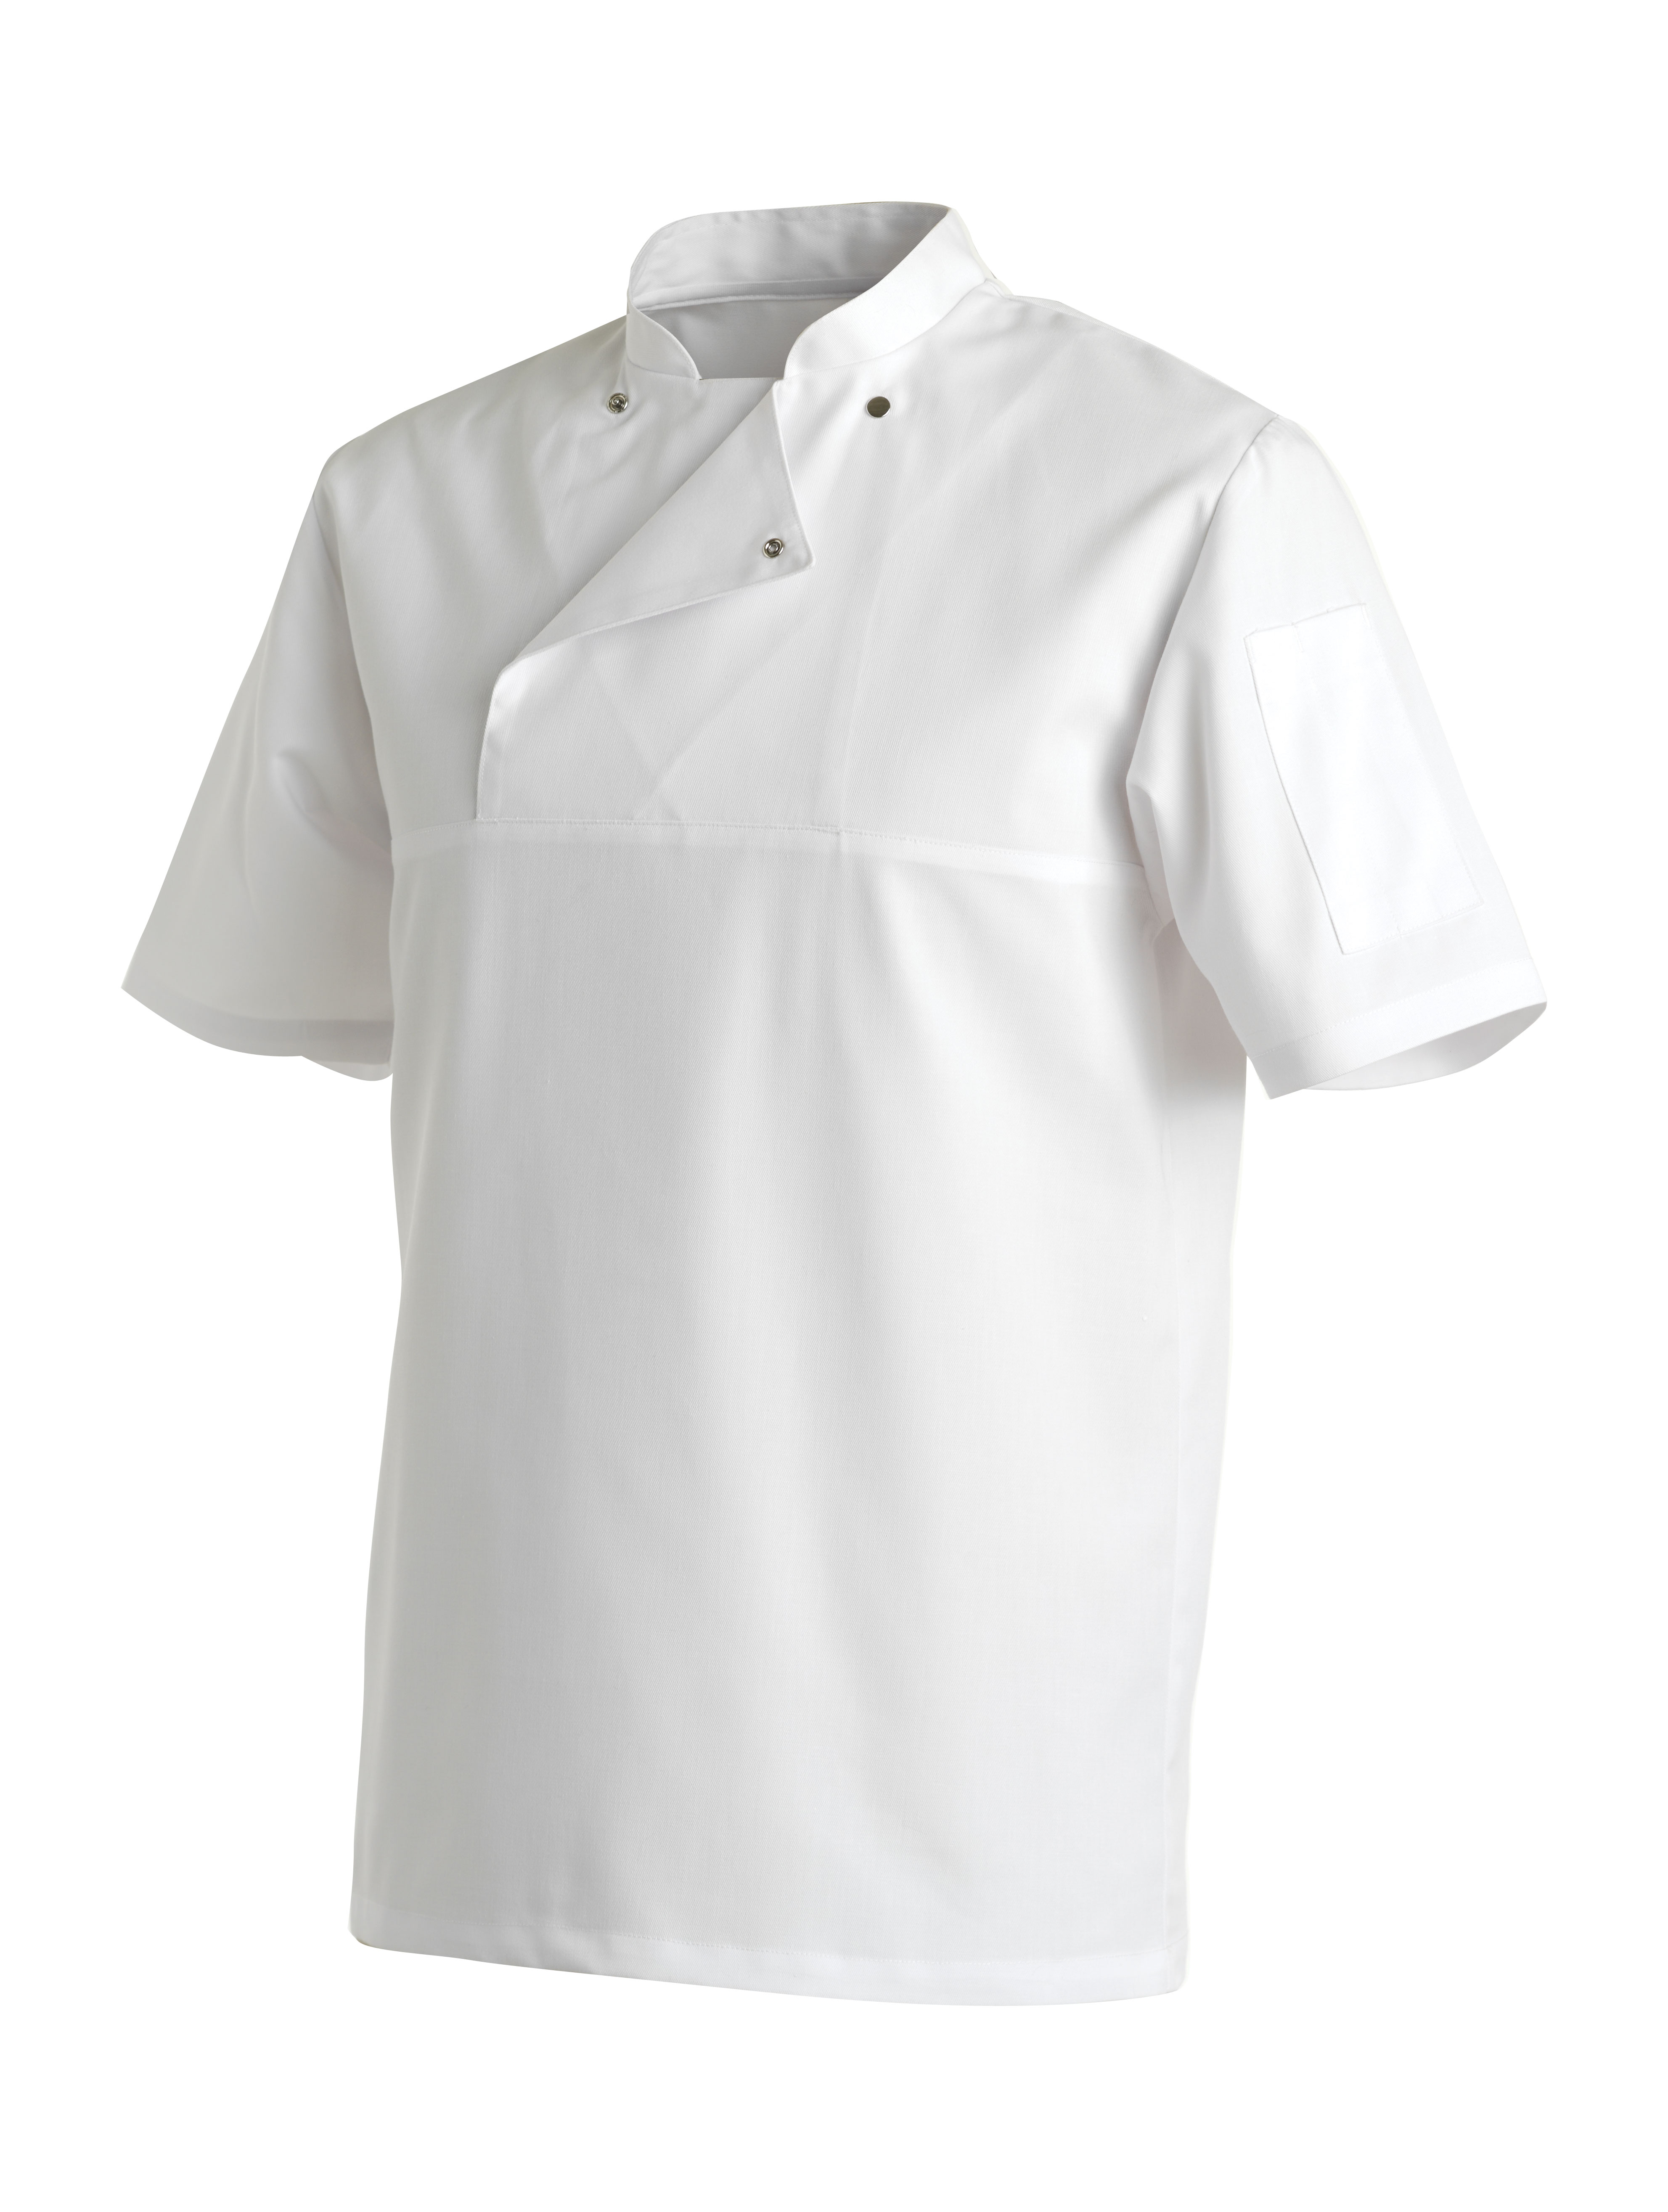 CHEFS UNIFORM JACKET UTILITY COAT SHORT - SMALL